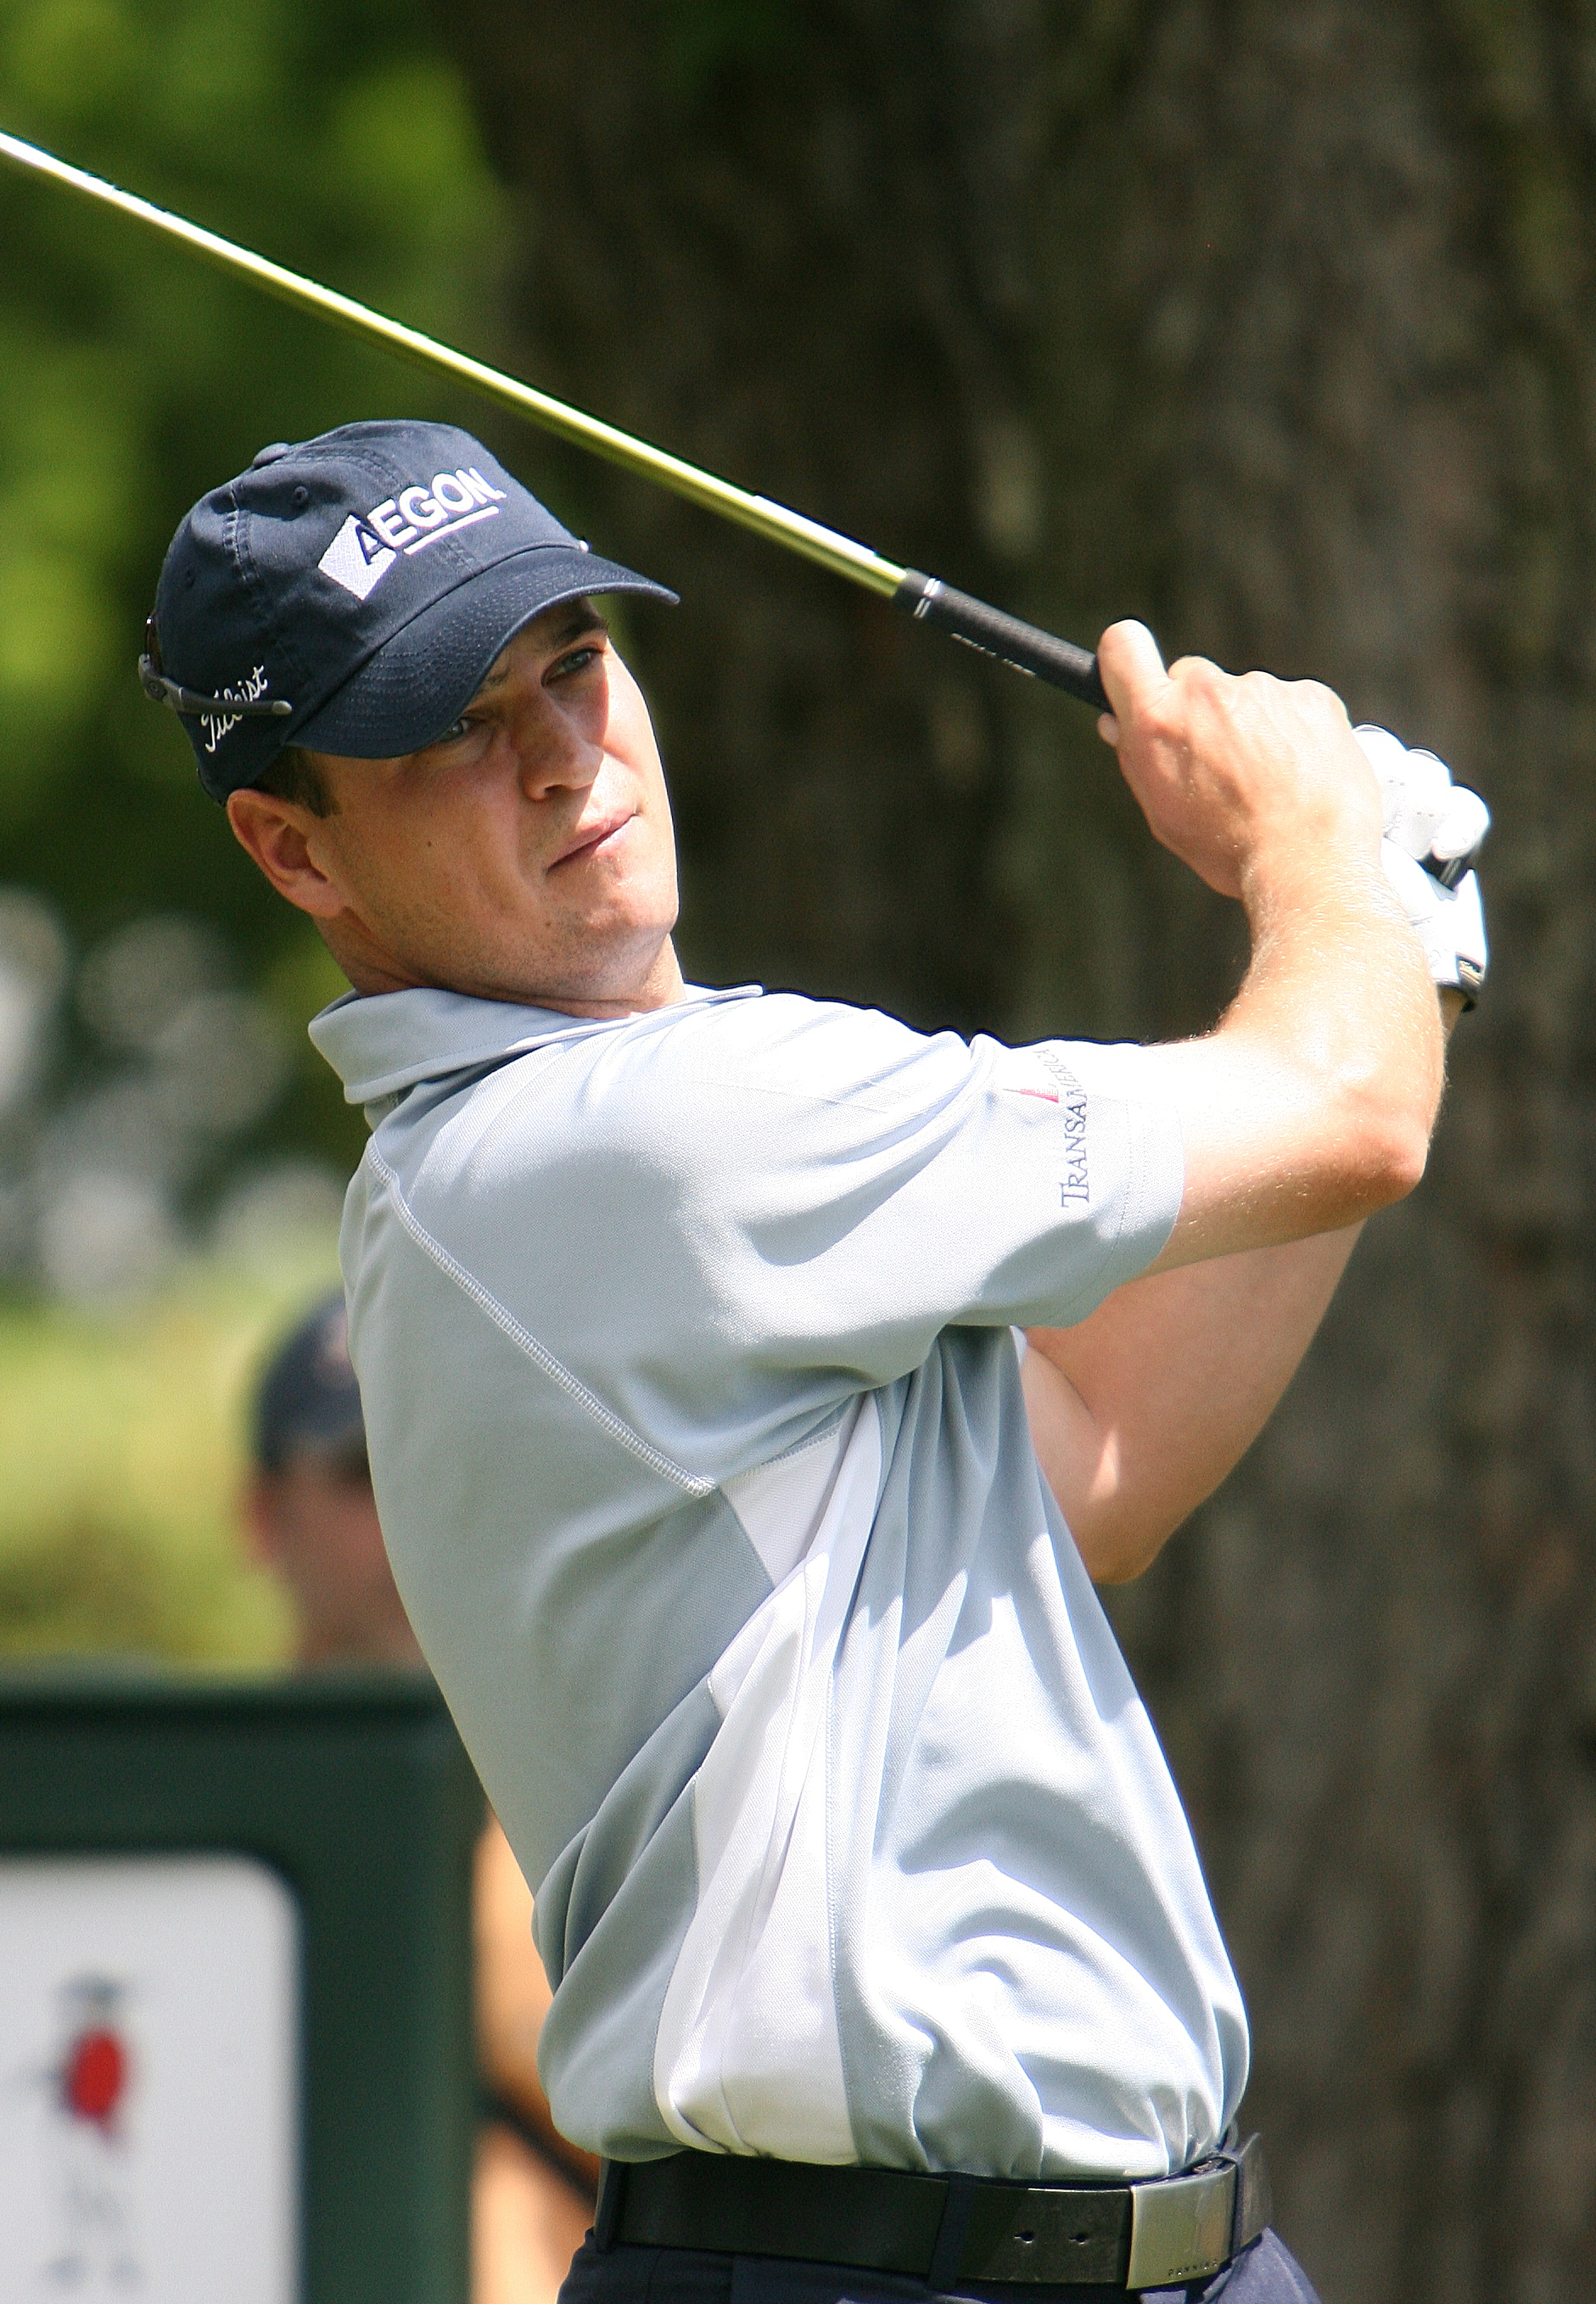 English: An image of golfer Zach Johnson on to...